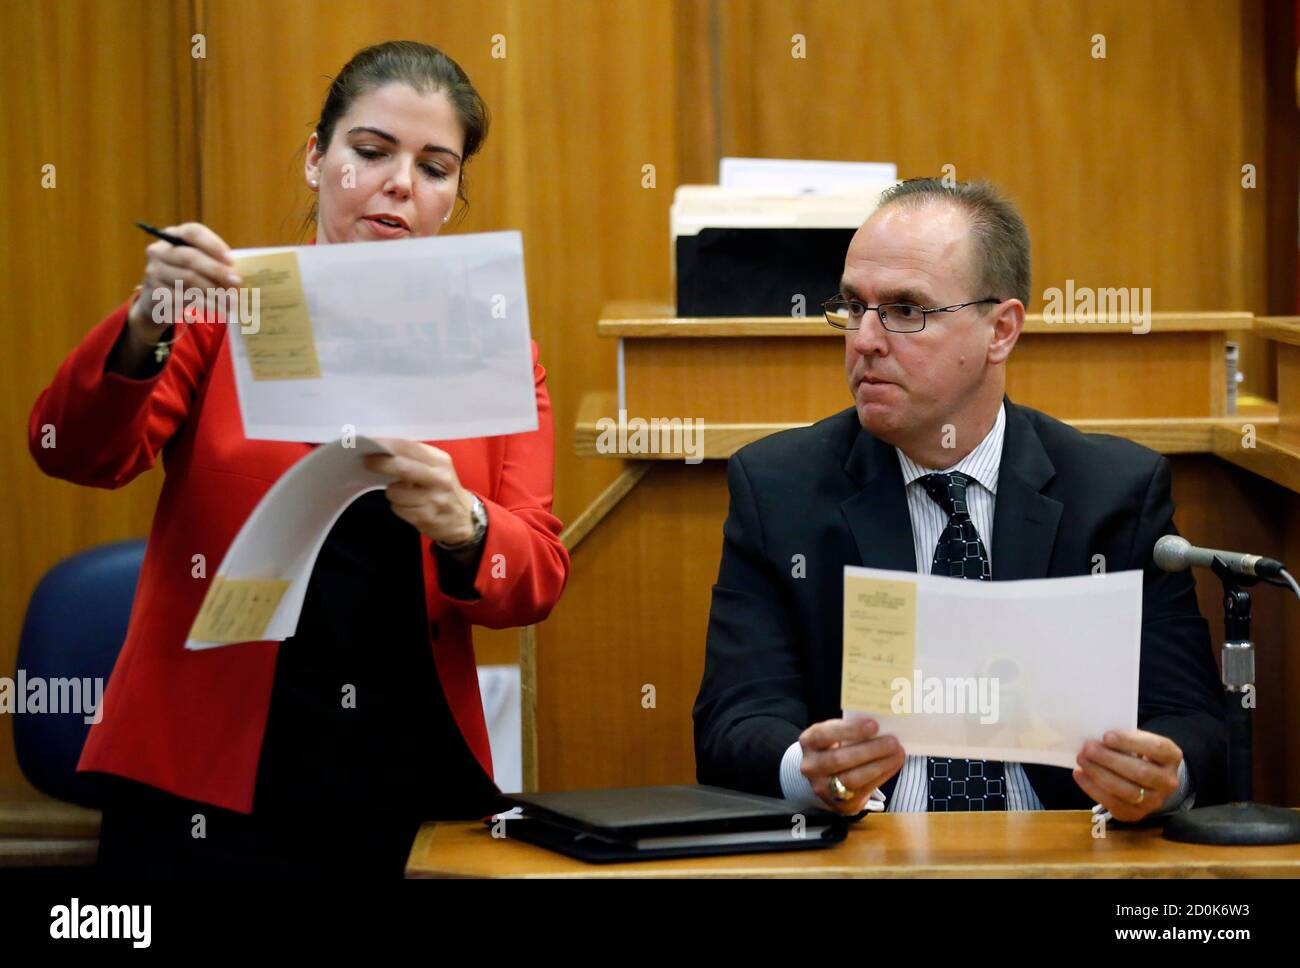 Prosecutor Marie Mato L Shows Evidence To City Of Miami Lt Carlos Castellanos During A Bail